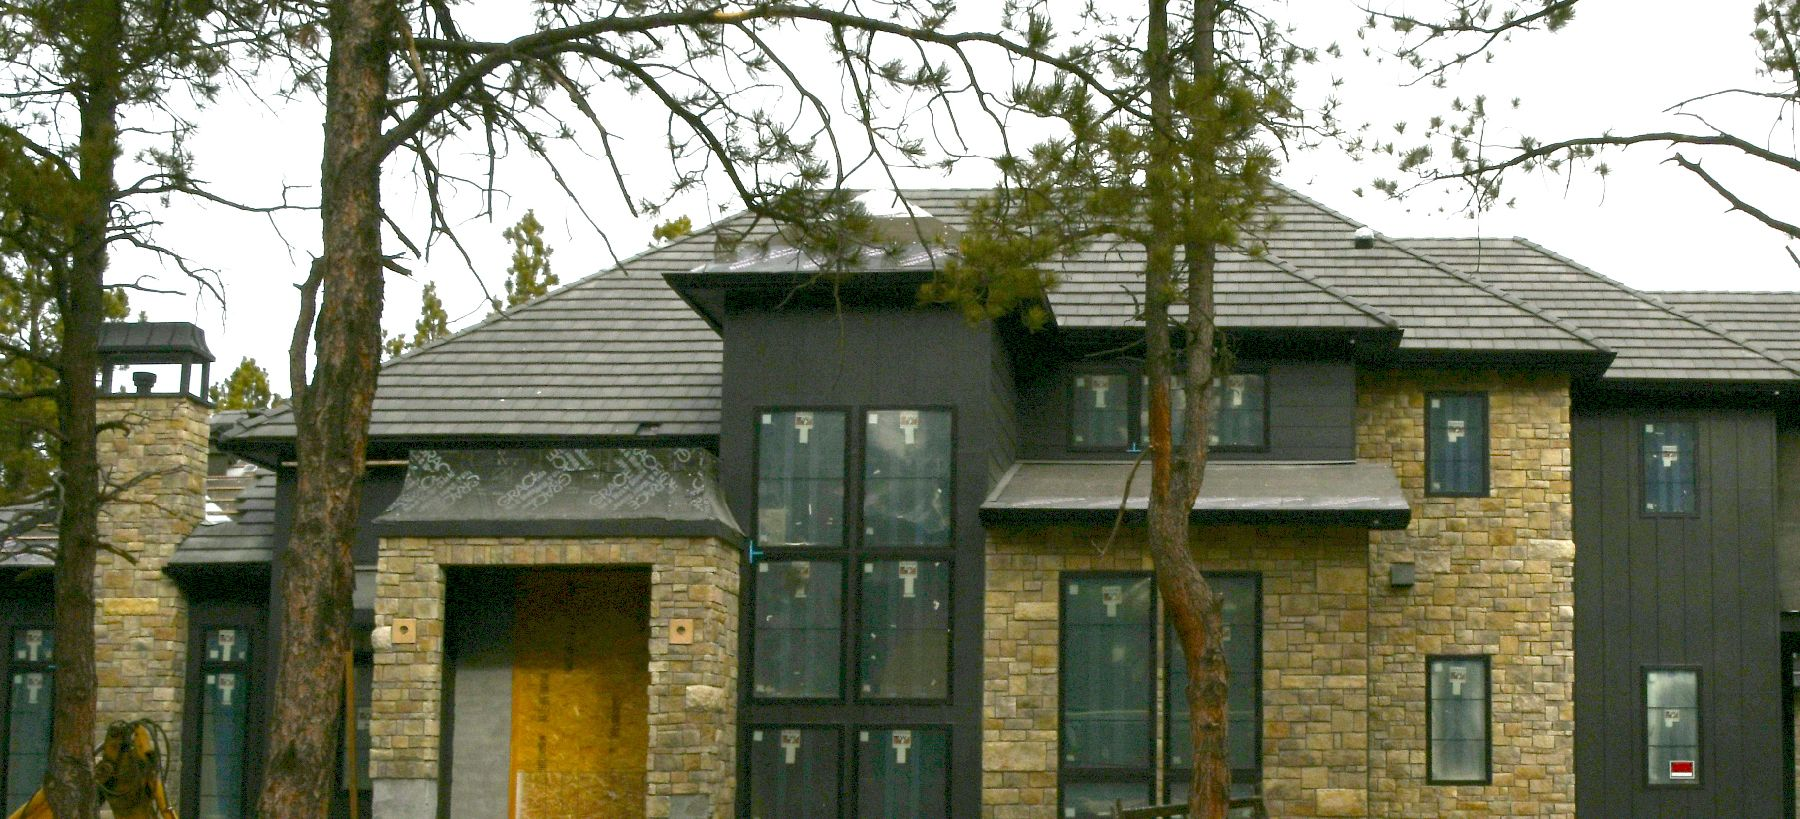 Best Top Roofing Companies Colorado Springs Co New Home Roofing Contractors Hail Damage 400 x 300